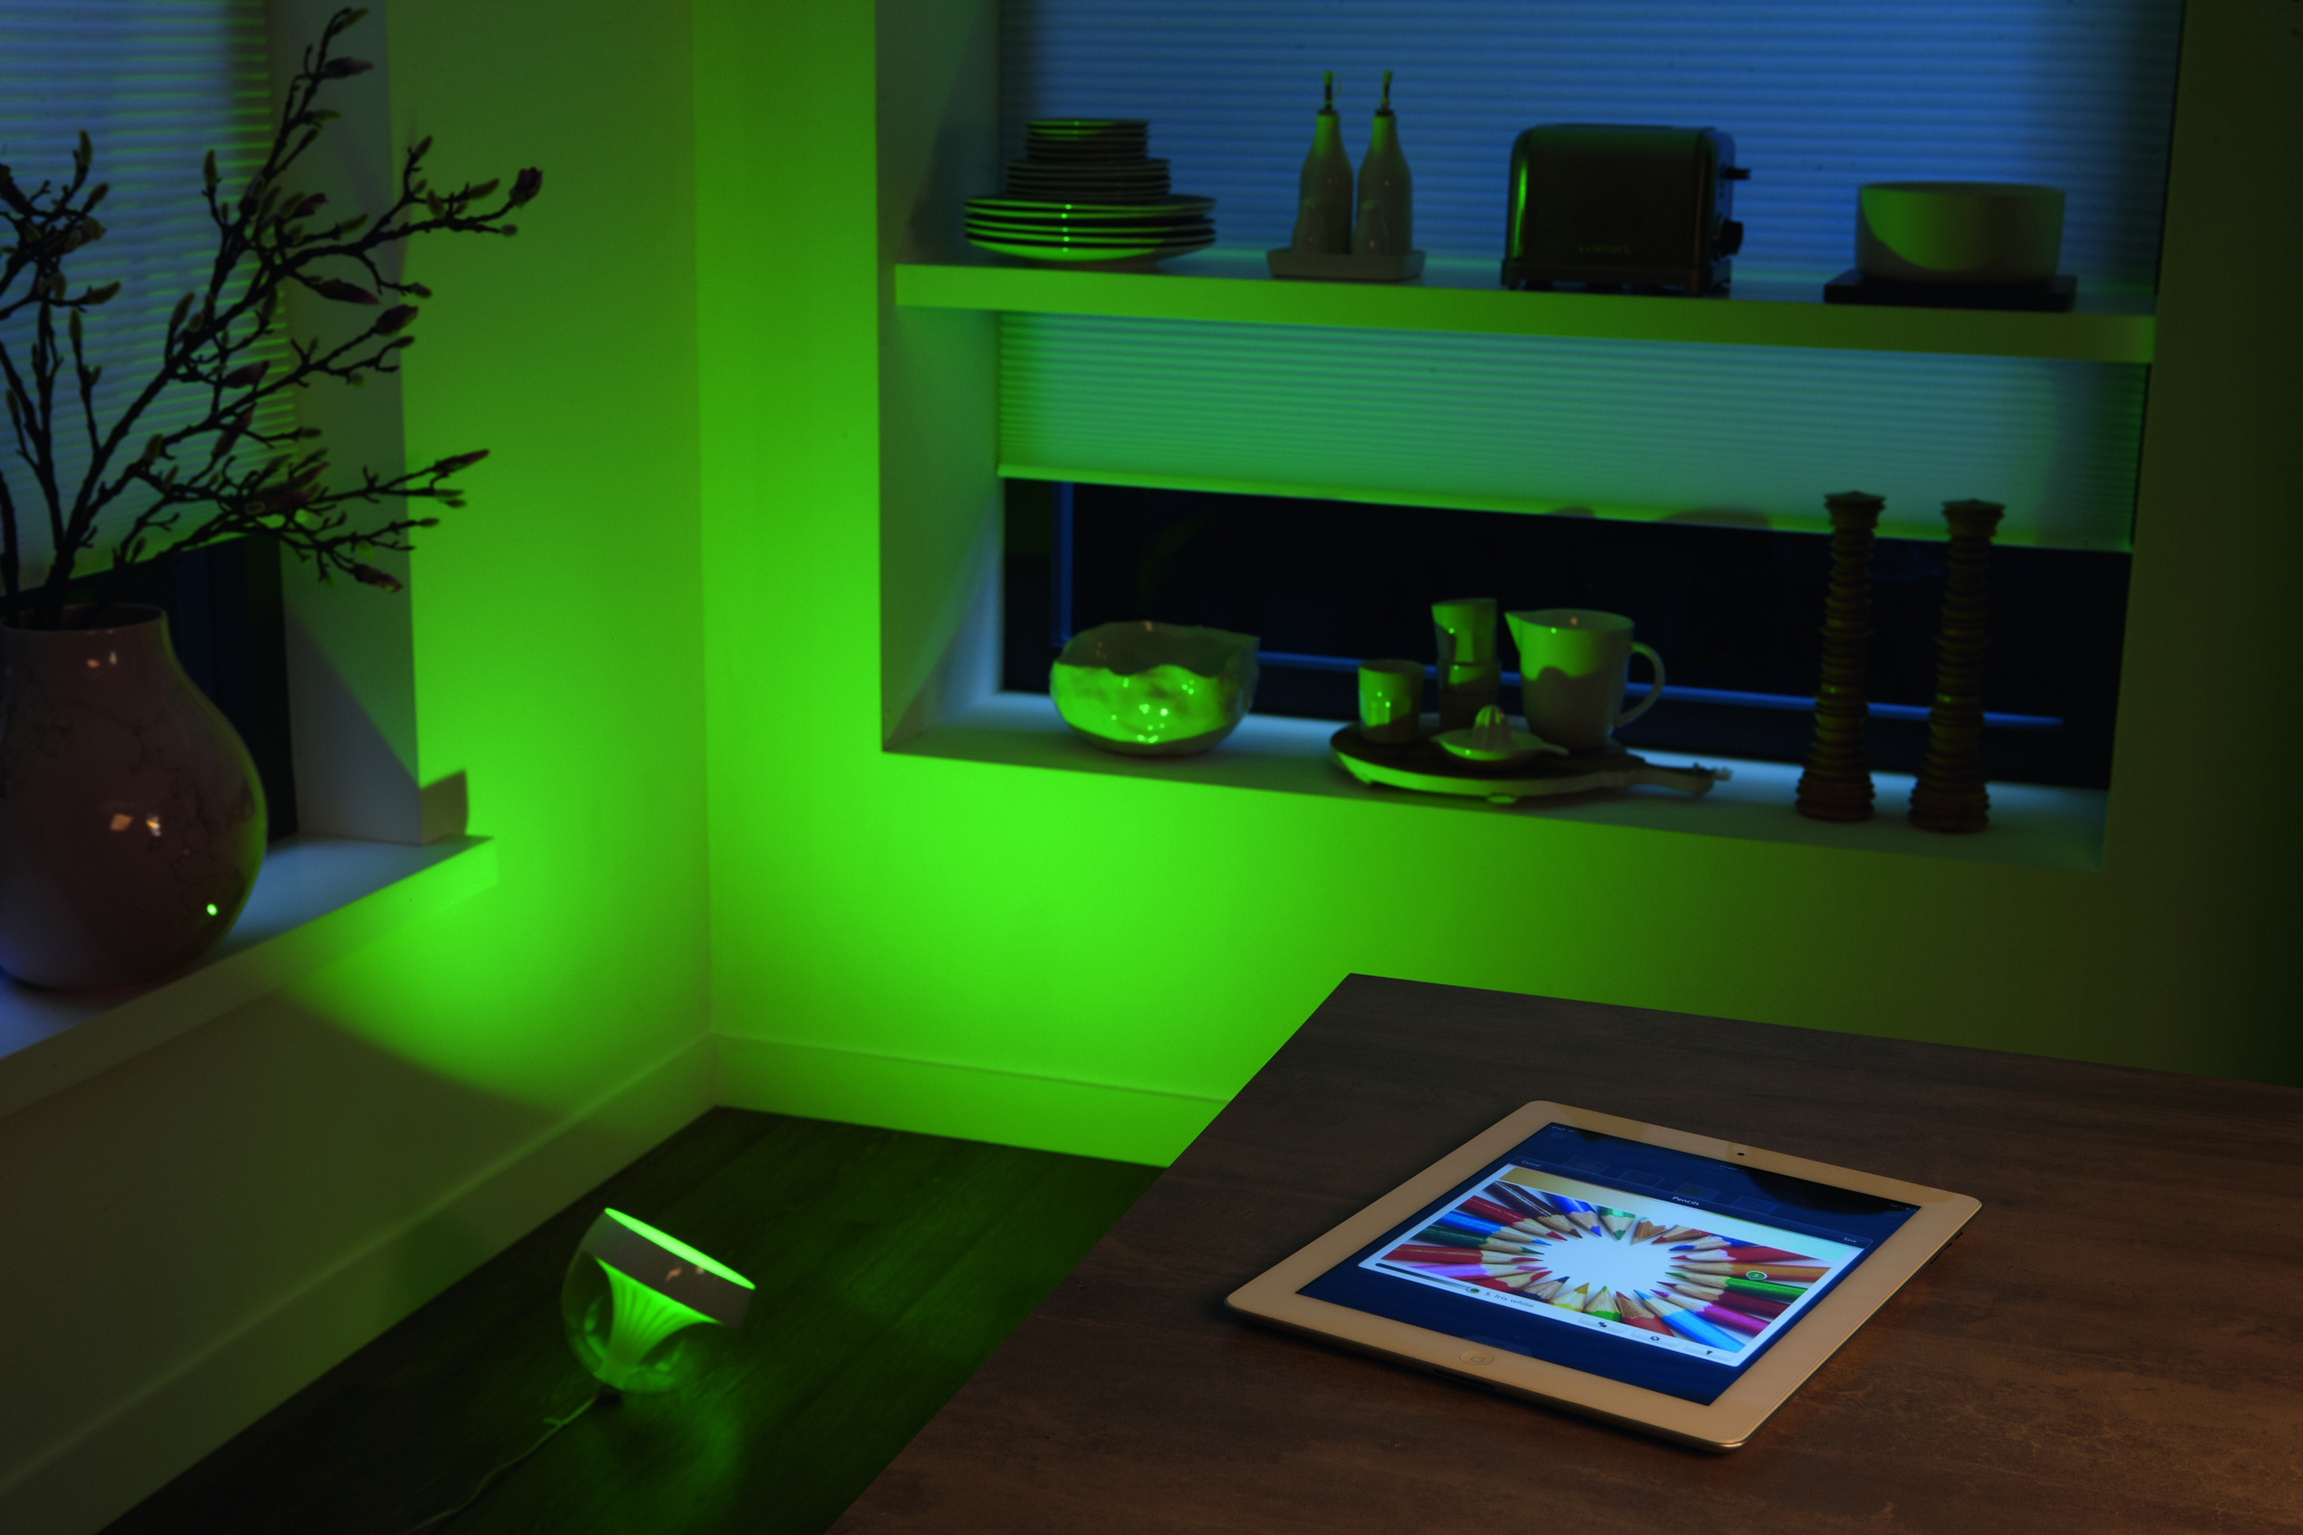 philips hue wird erweitert ehome. Black Bedroom Furniture Sets. Home Design Ideas